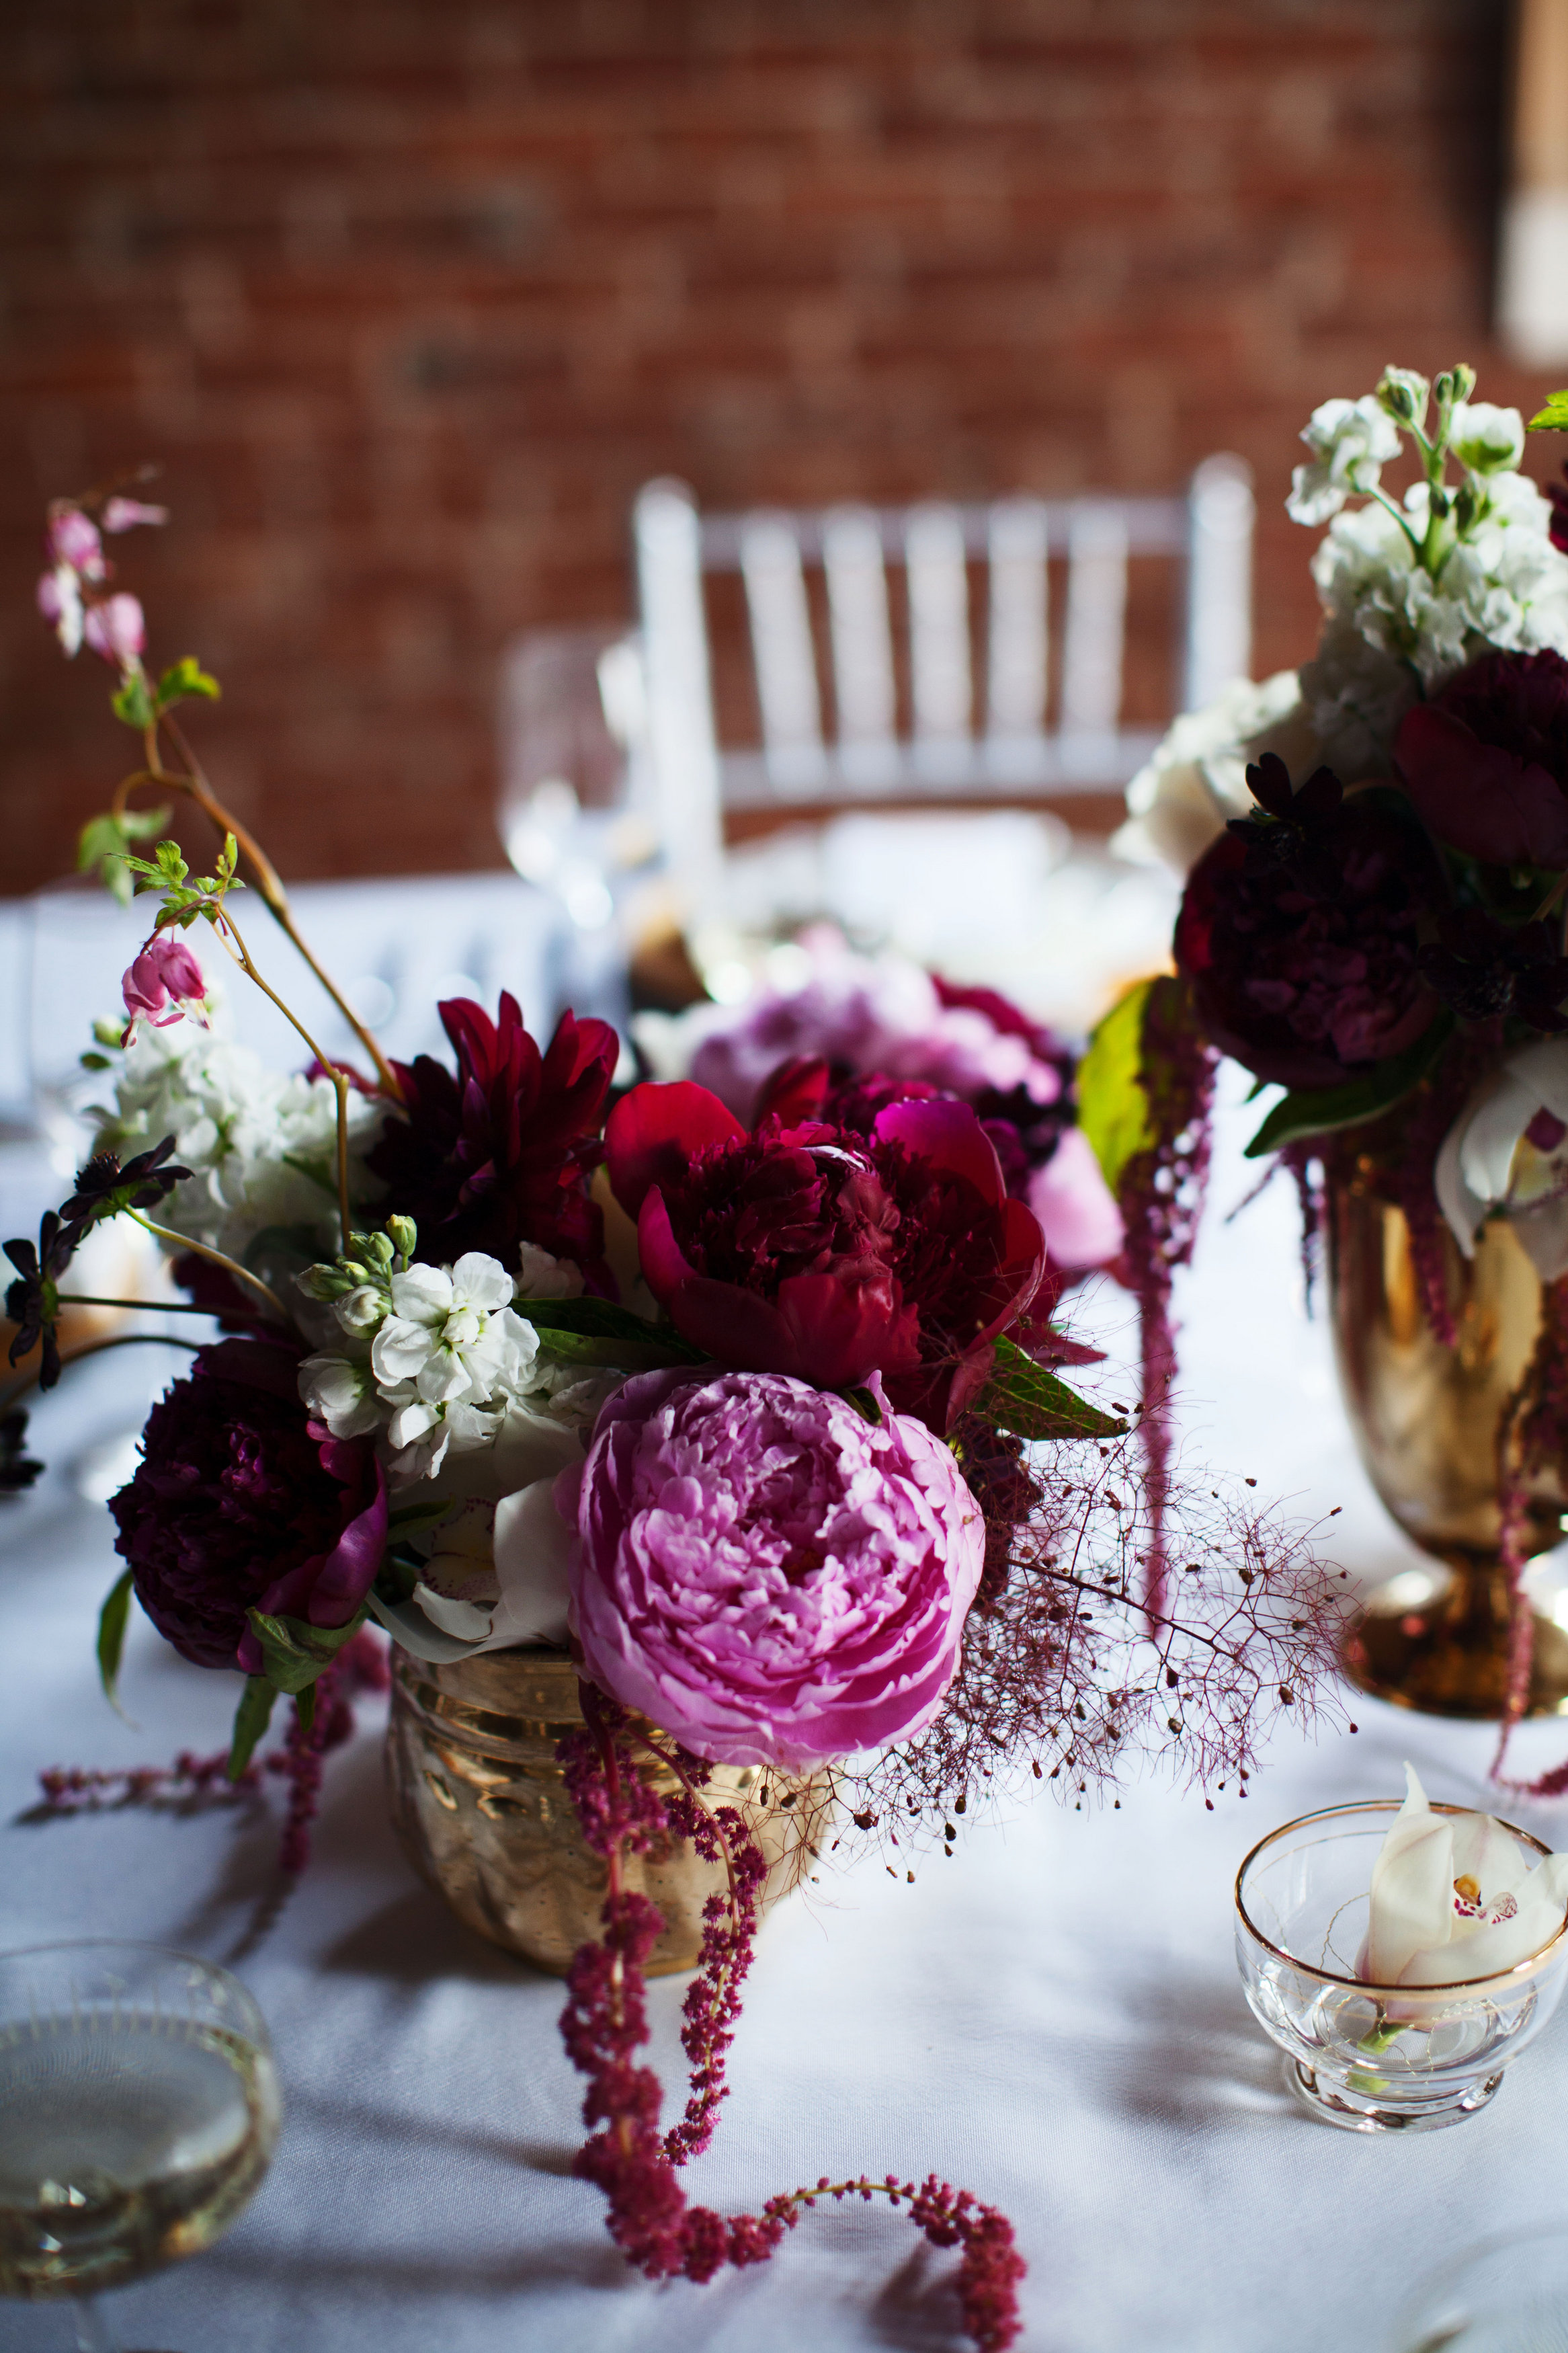 Burgundy And Blush Peony Centerpiece With Smokebush By Anastasia Ehlers Photo By Anne Nunn